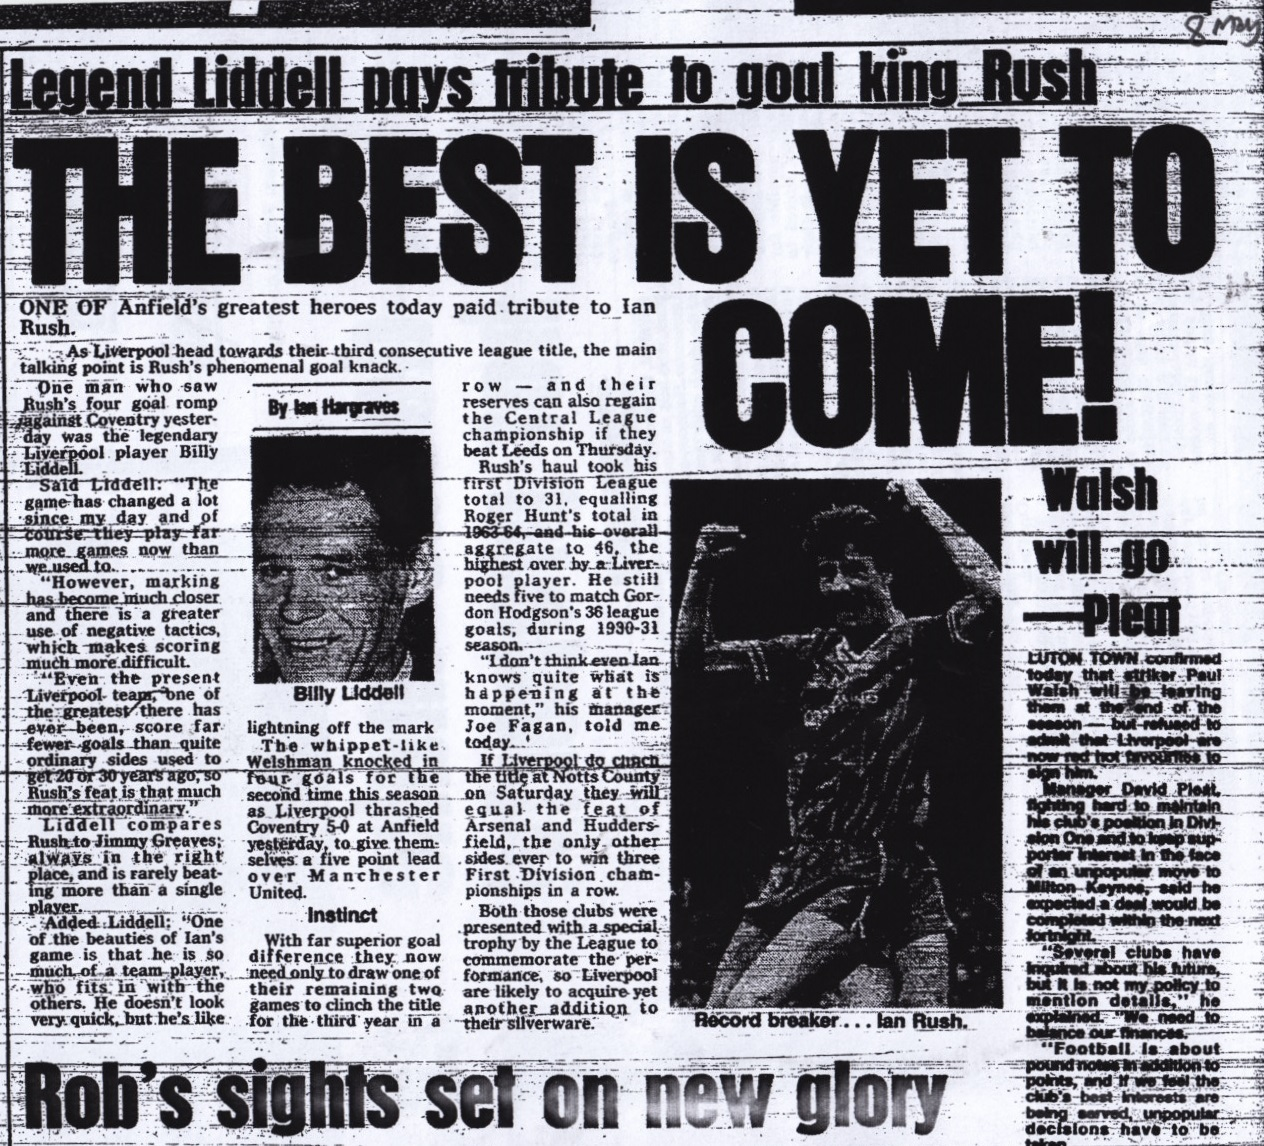 Liddell pays tribute to goal king Rush - from 7 May 1984